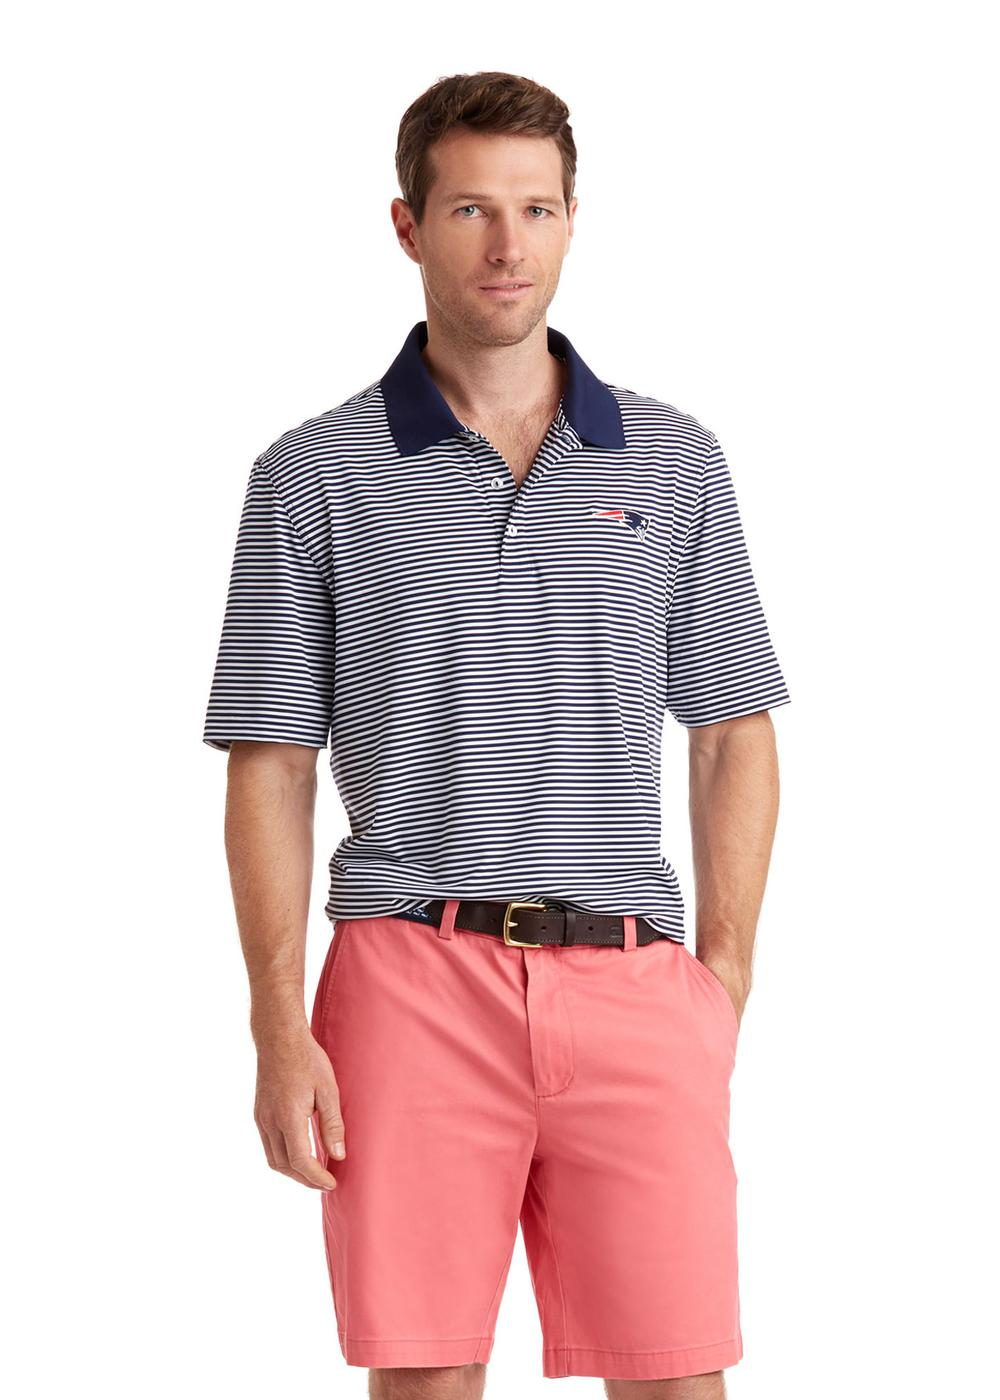 Vineyard Vines product